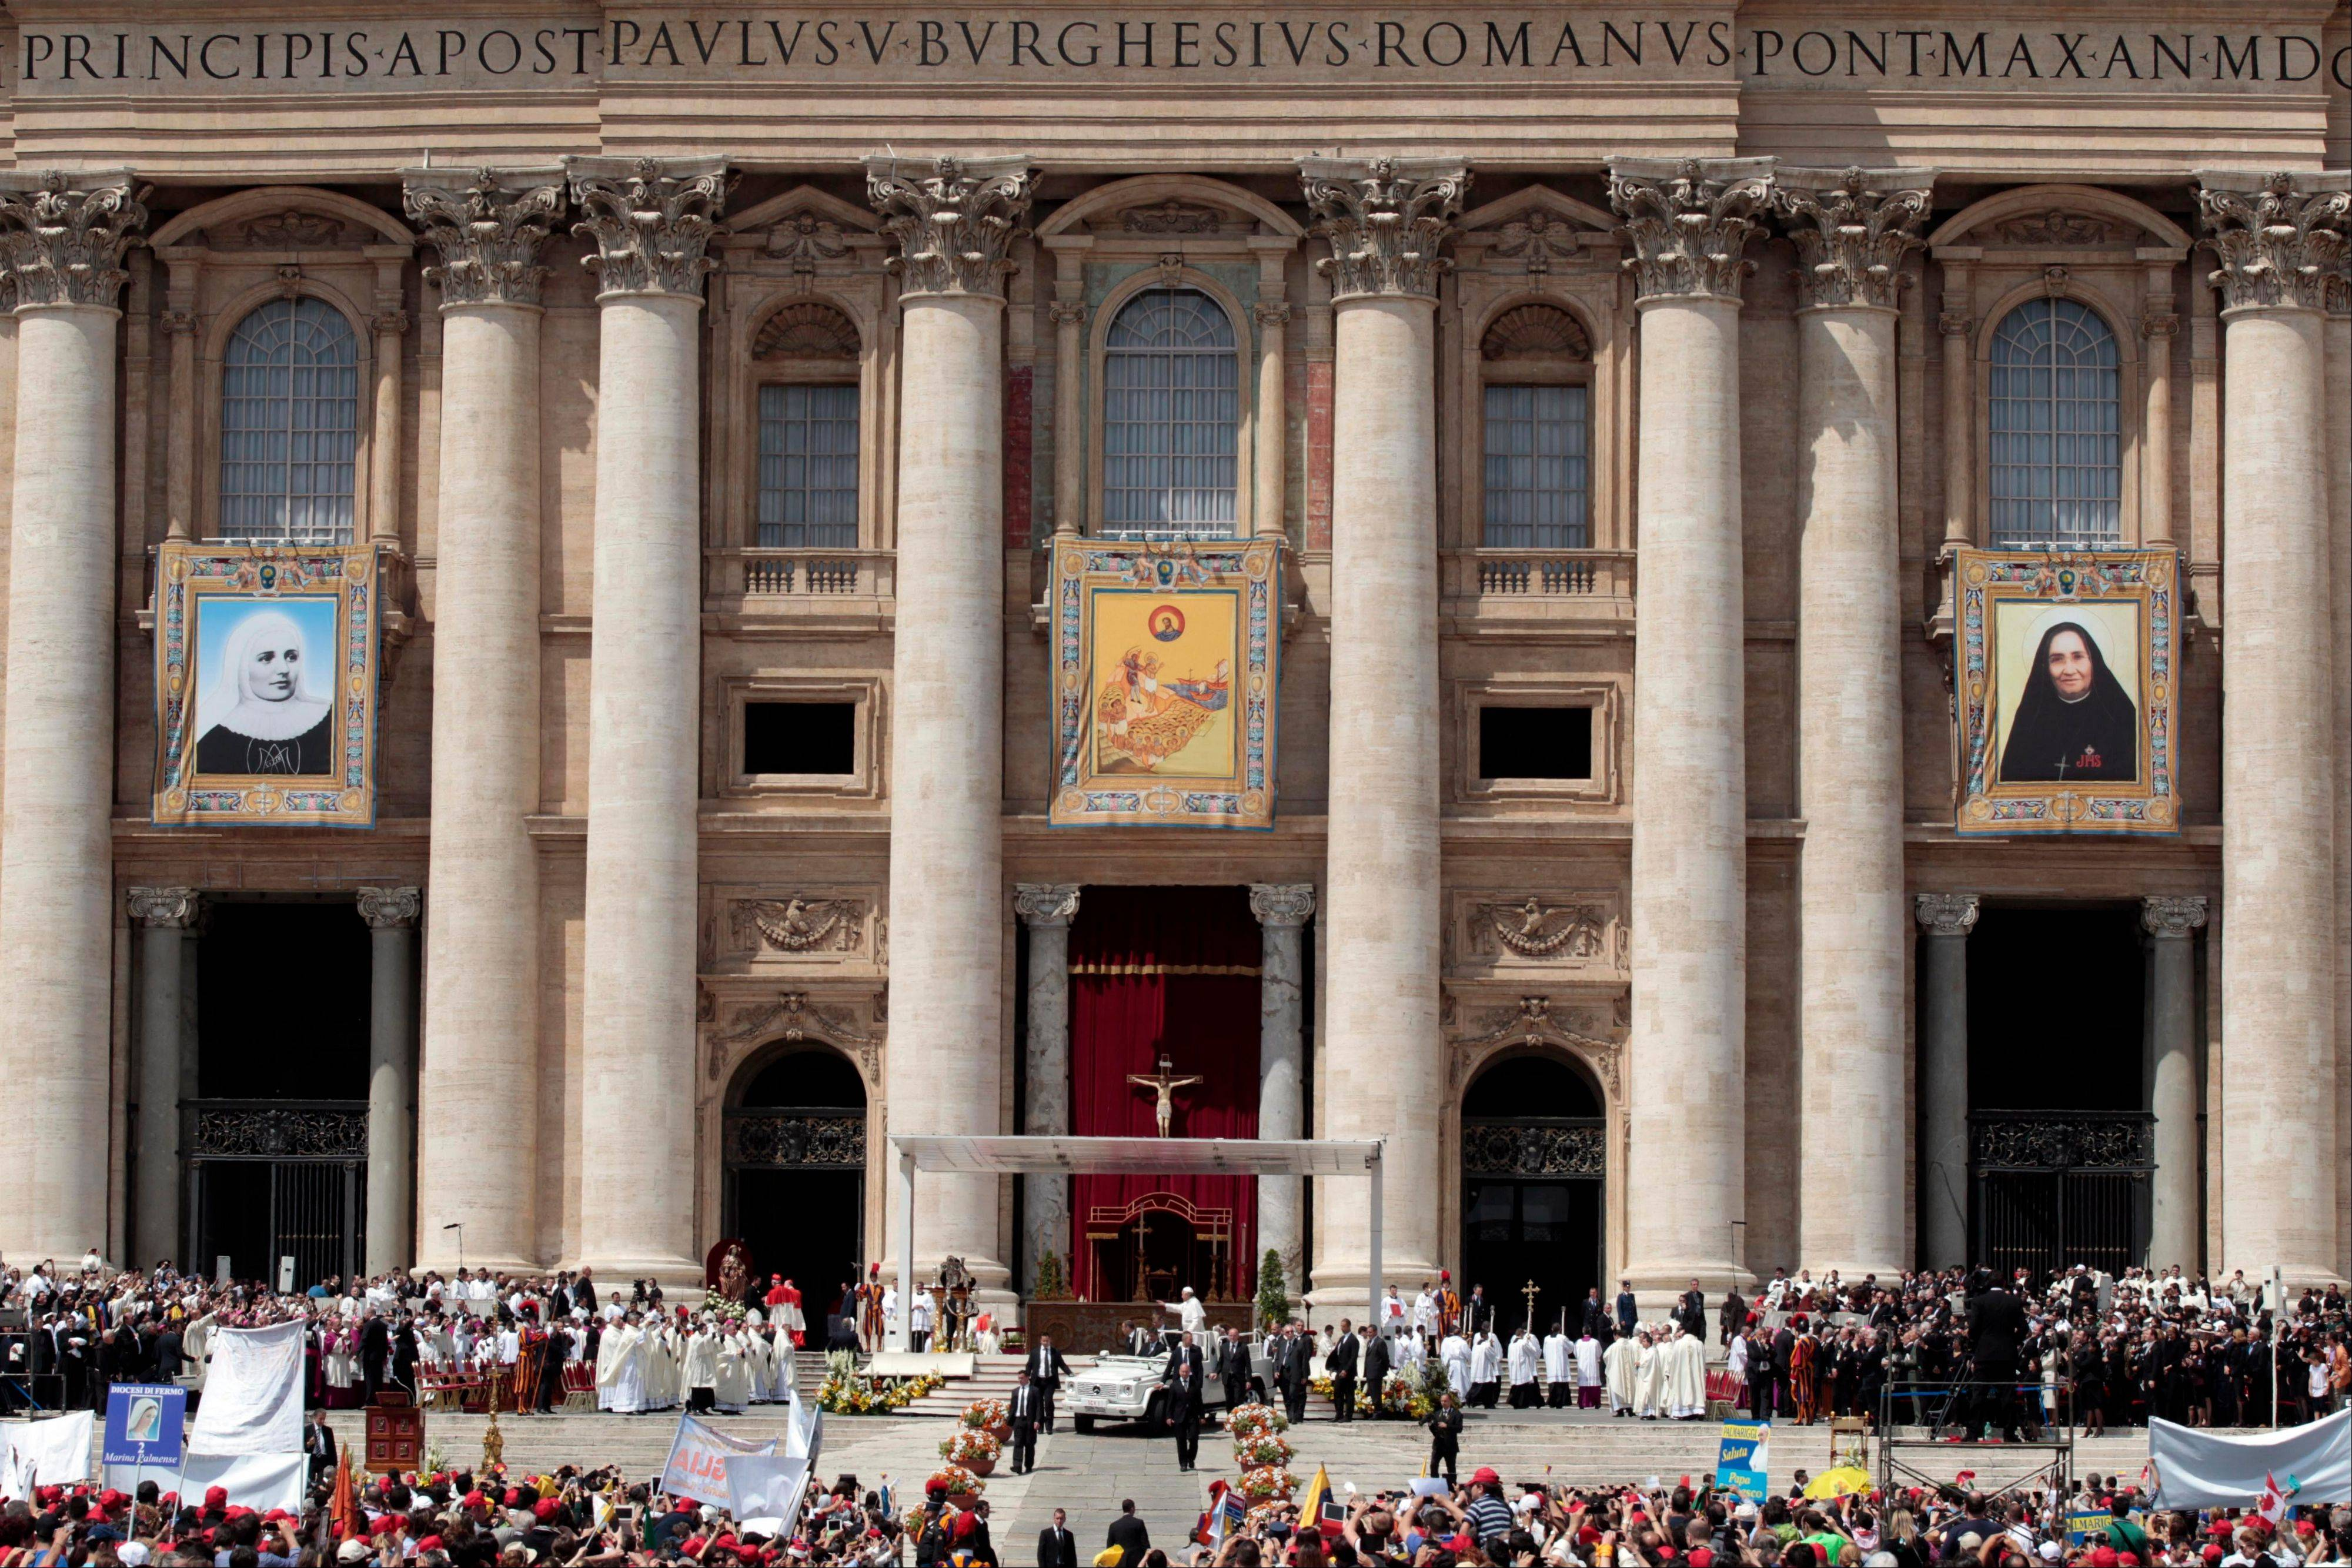 From left, the tapestries of Laura di Santa Caterina da Siena Montoya of Colombia, Antonio Primaldo and his companions, also known as the Martyrs of Otranto, and Maria Guadalupe Garcia Zavala of Mexico, are displayed as Pope Francis, bottom center, leaves at the end of a canonization mass in St. Peter�s Square at the Vatican, Sunday